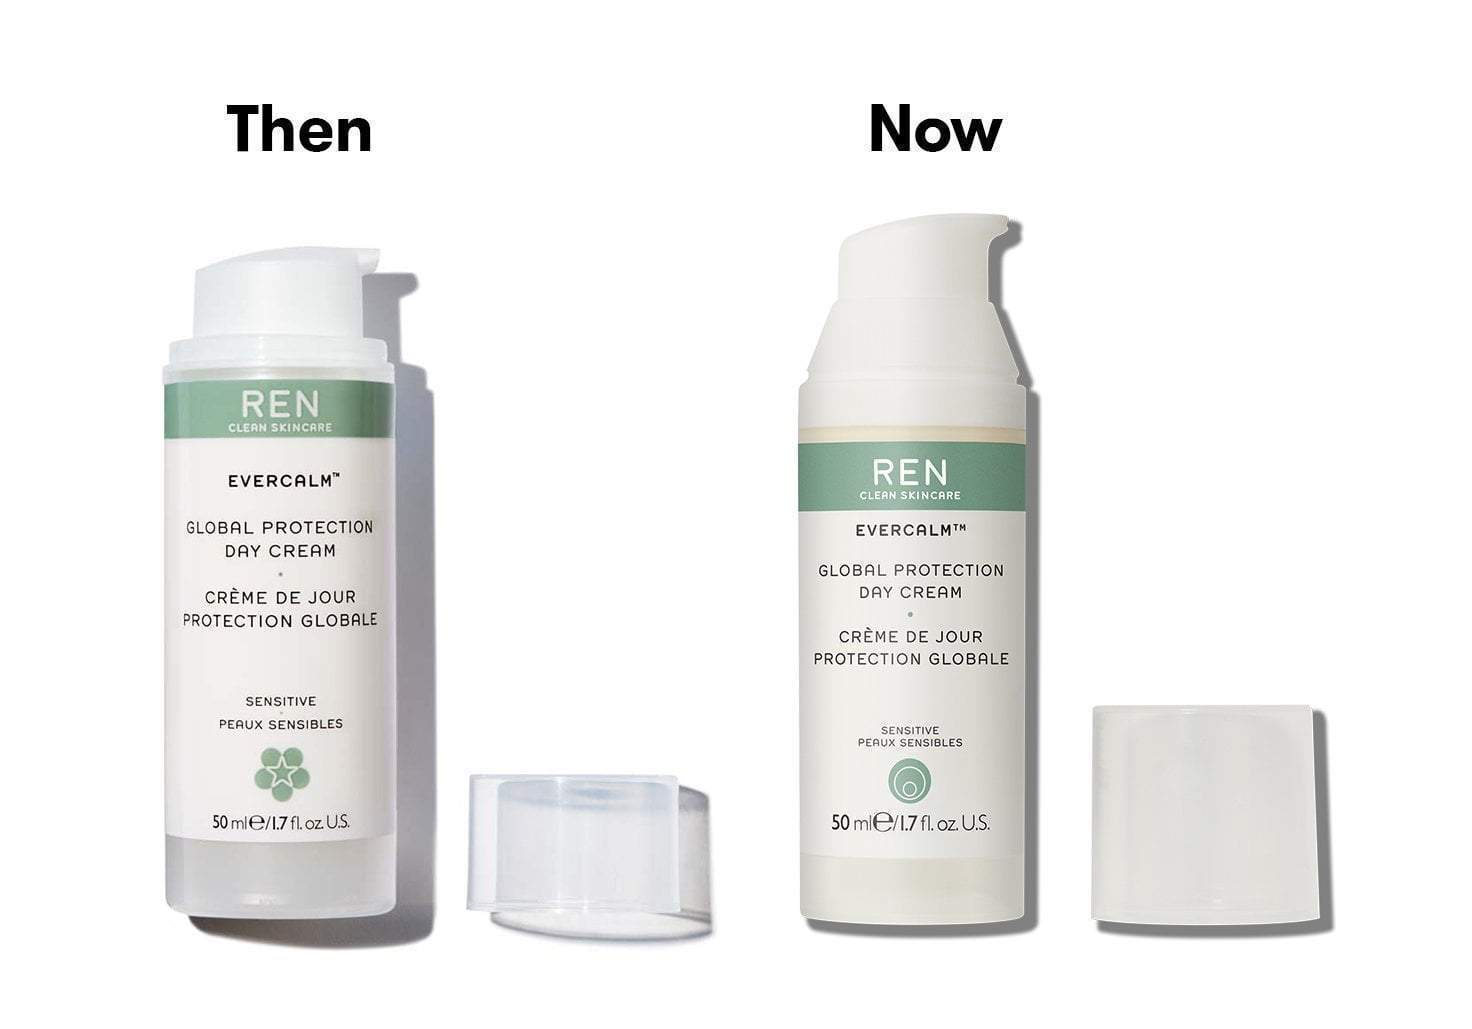 Reducing waste: our formula repack.